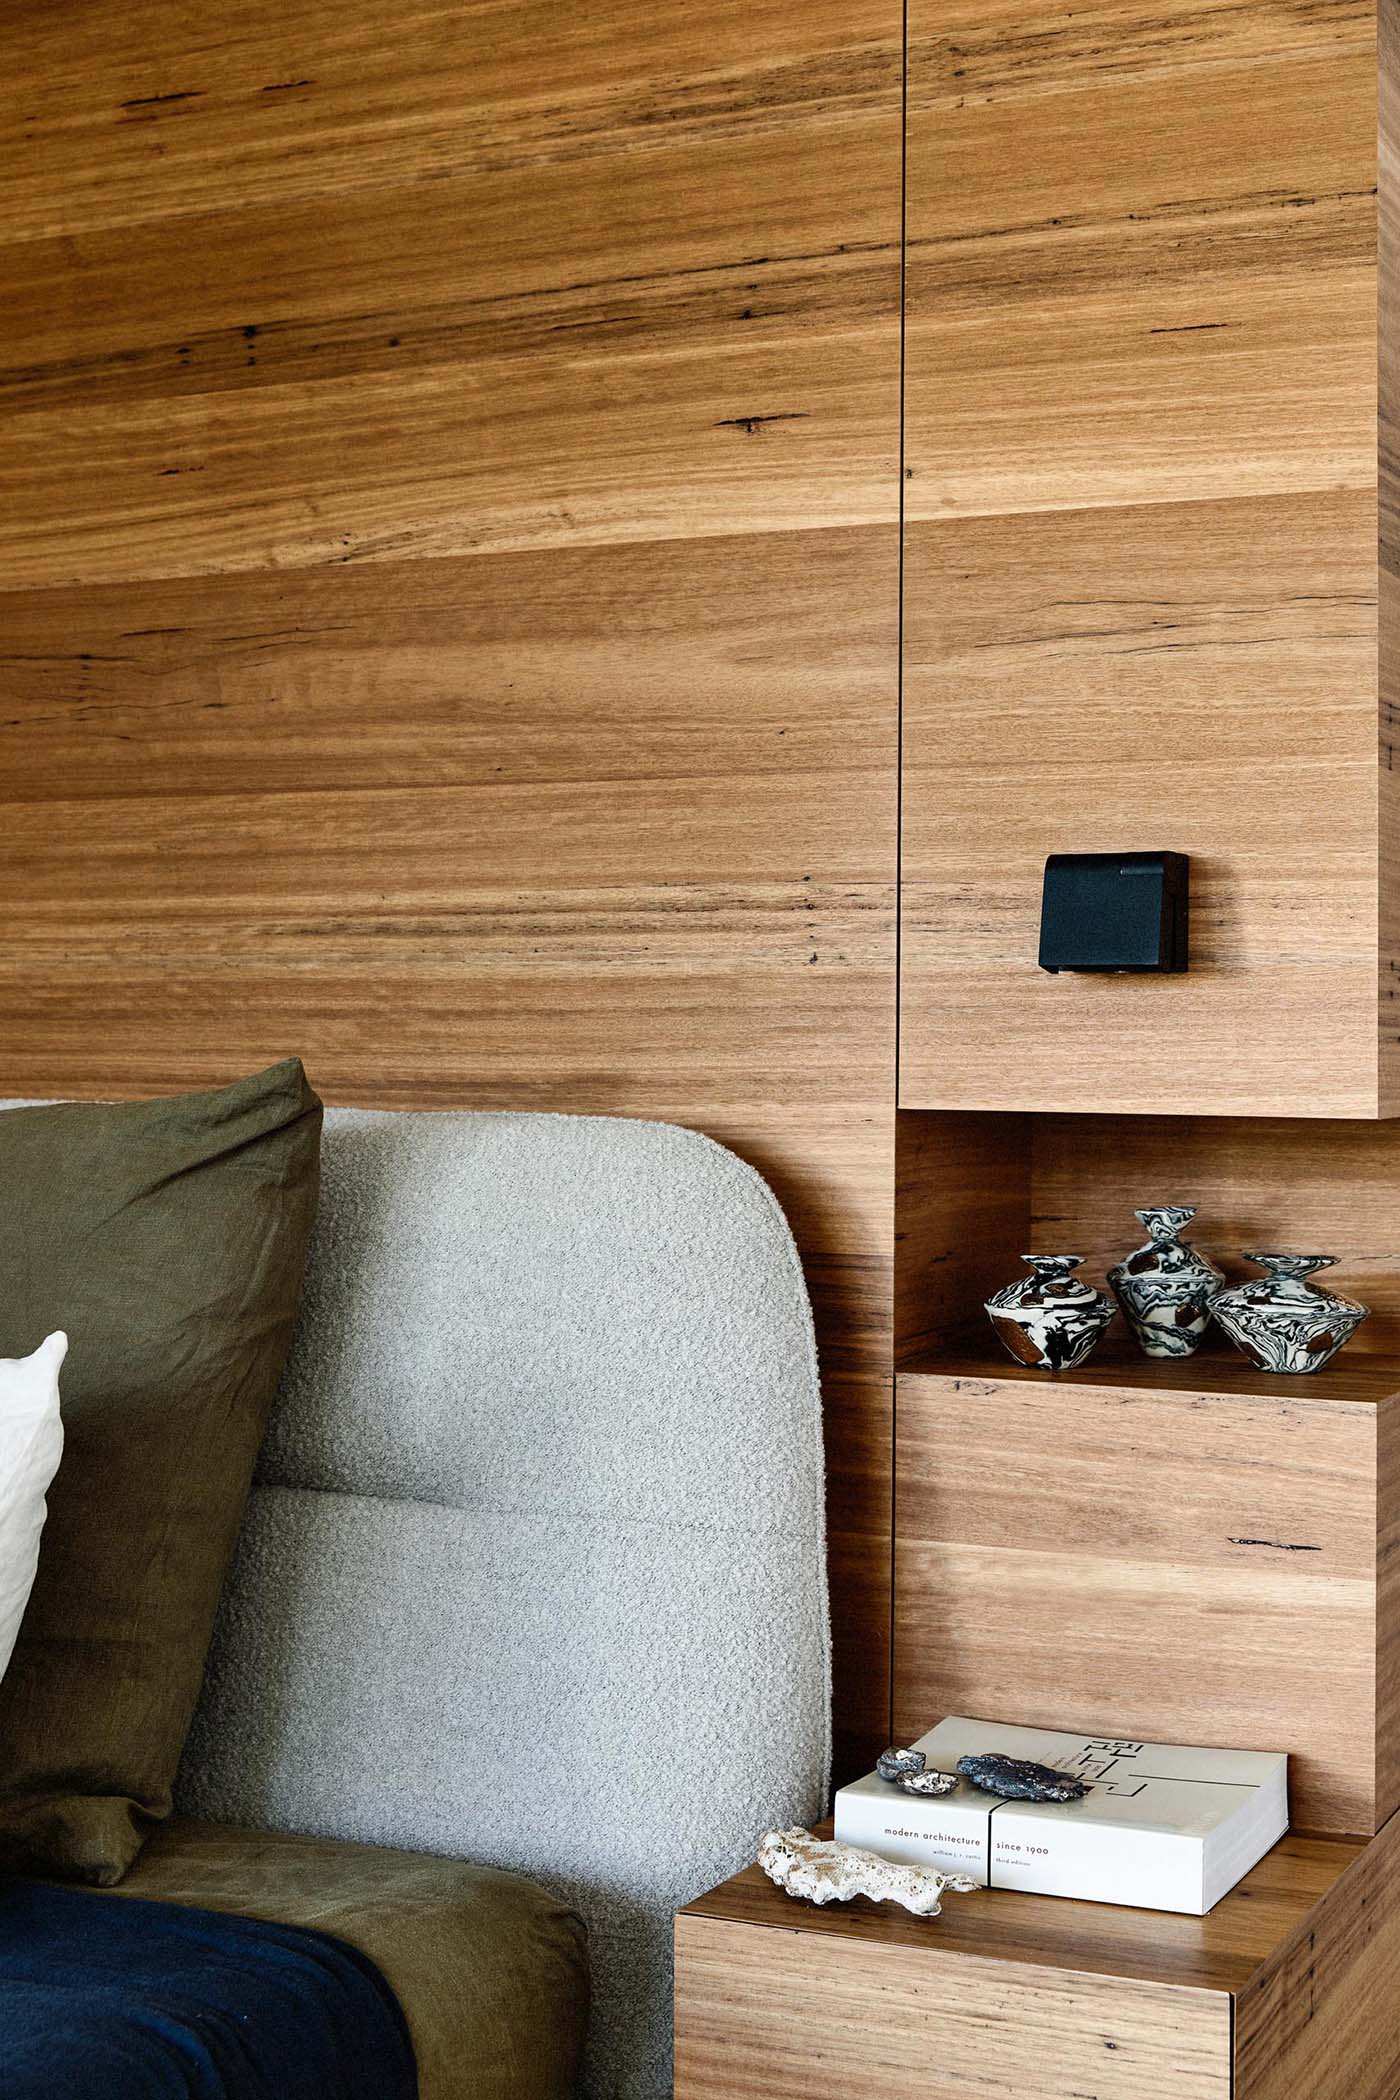 In this modern bedroom, a partial wood wall becomes the backdrop for the bed, and includes bedside tables and shelving niches in its design.